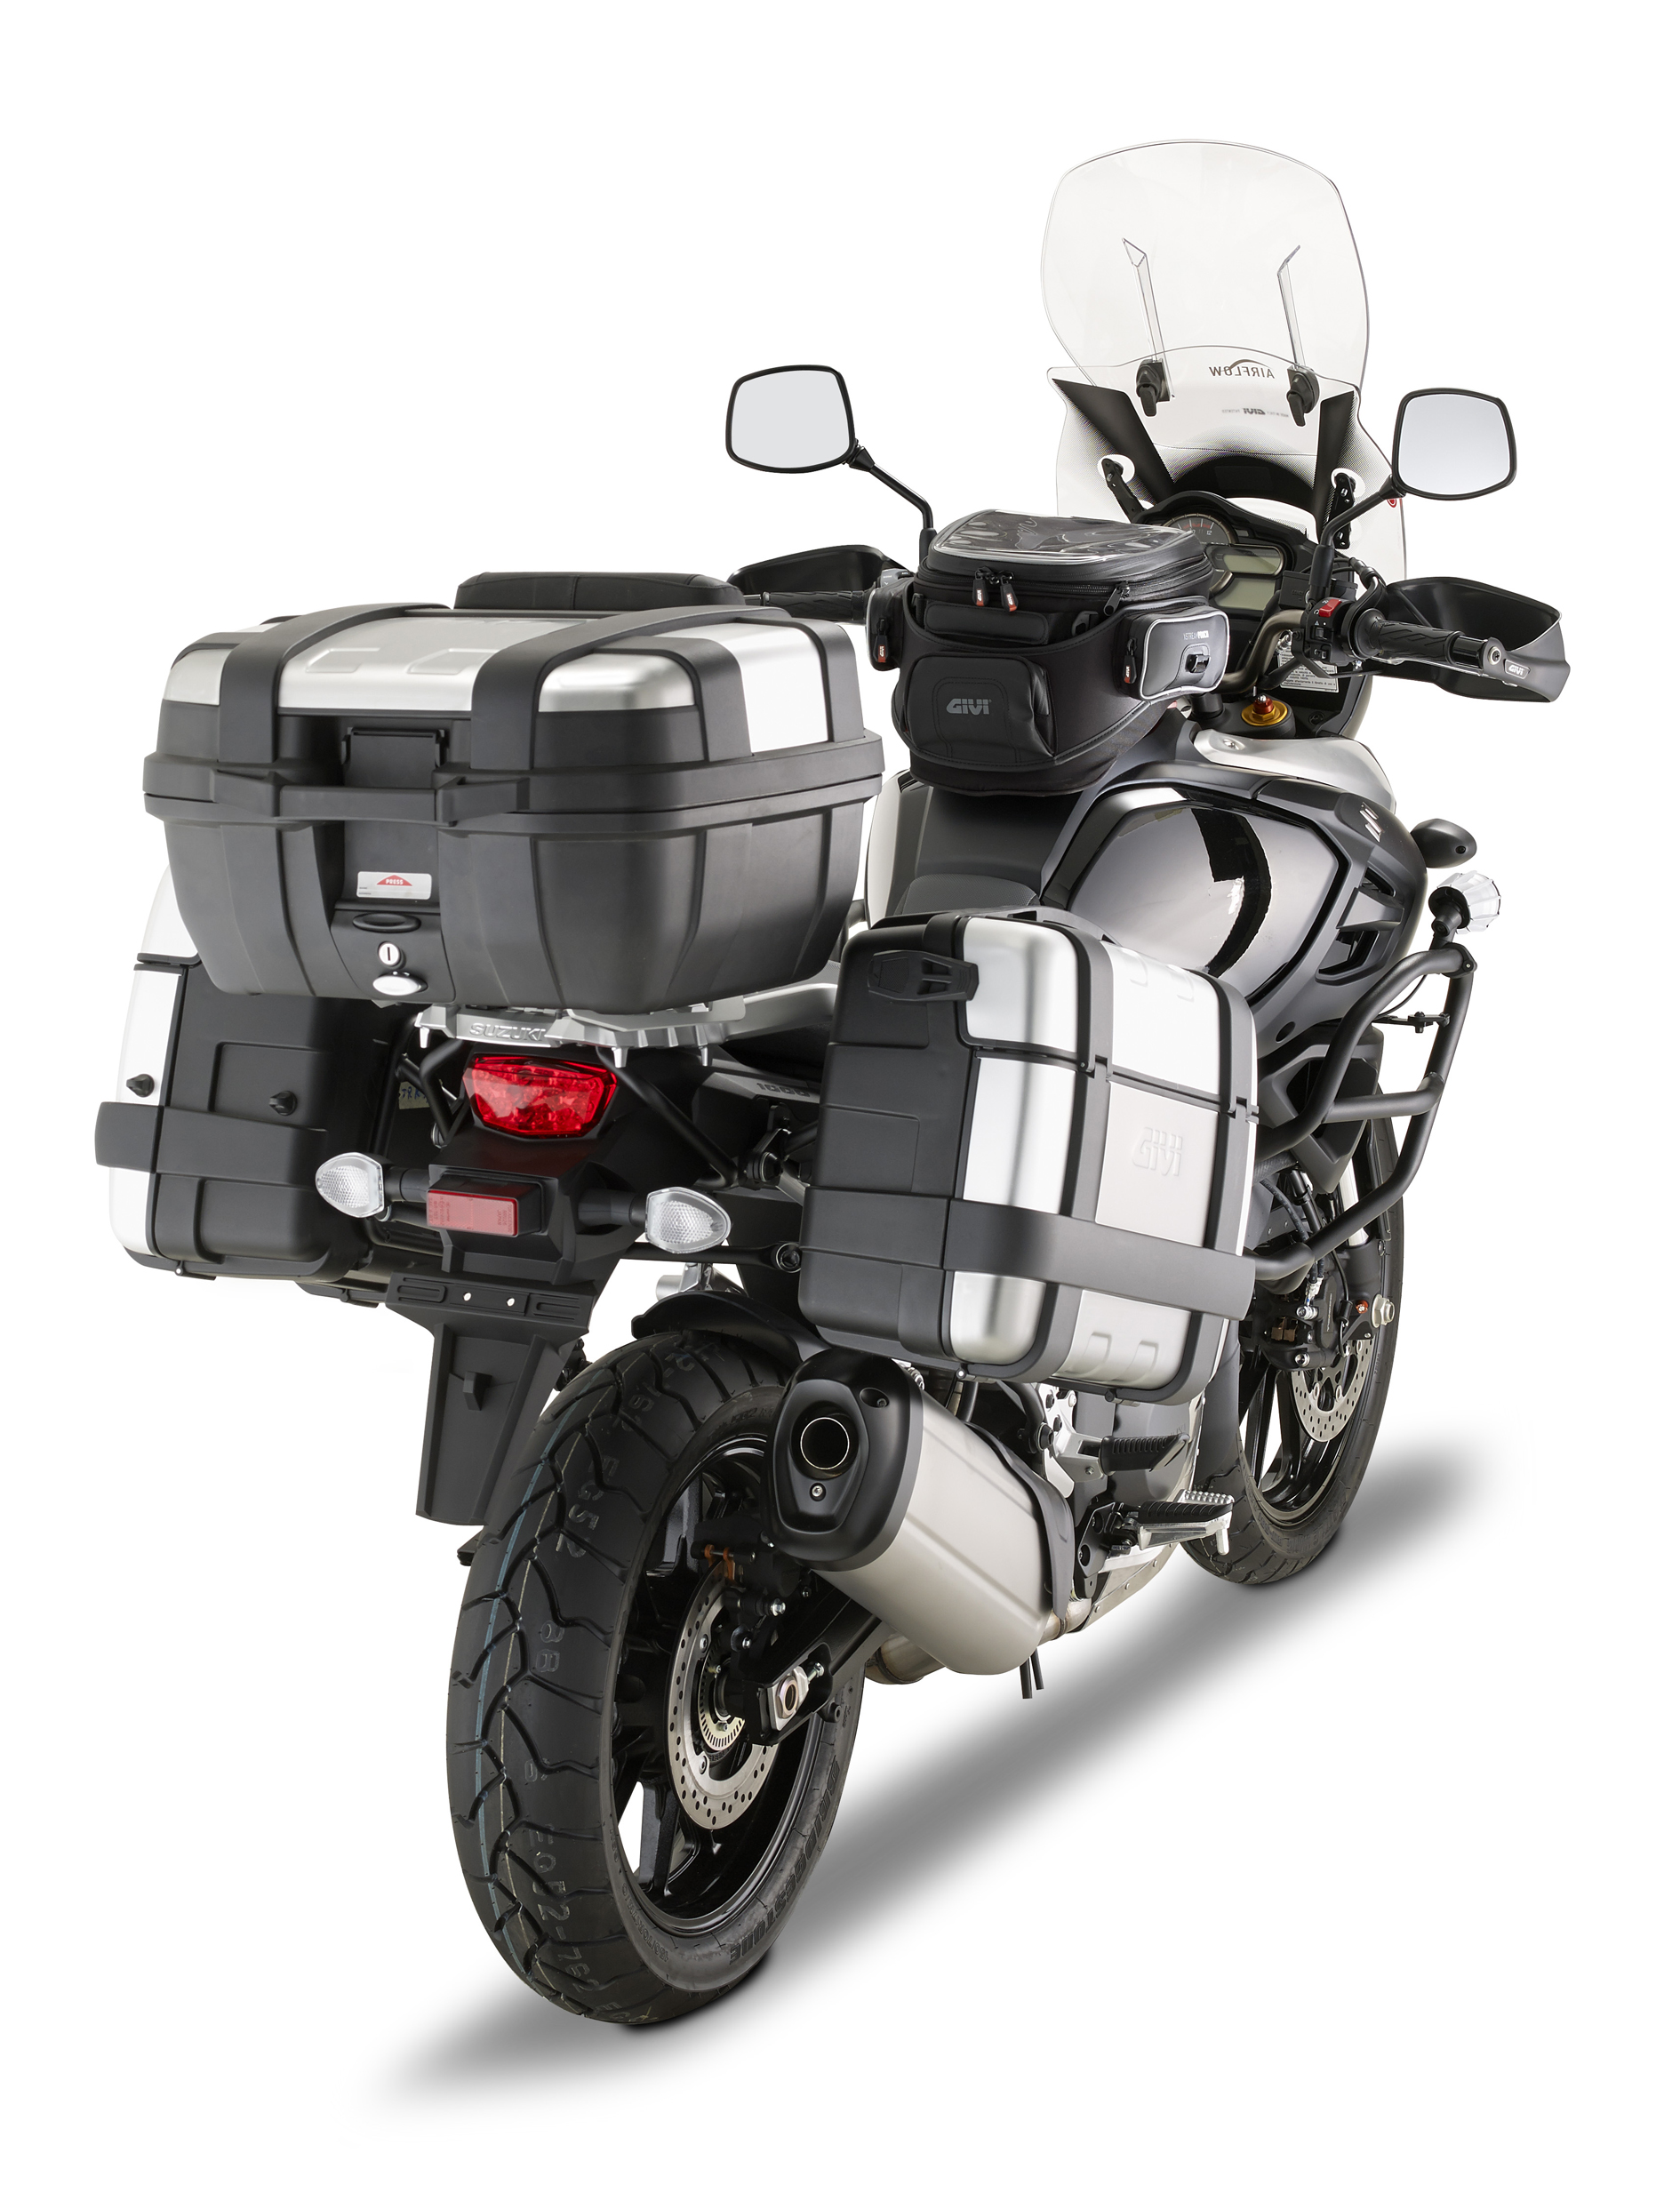 givi release photos of v-strom 1000 2014 accessories | a pair of